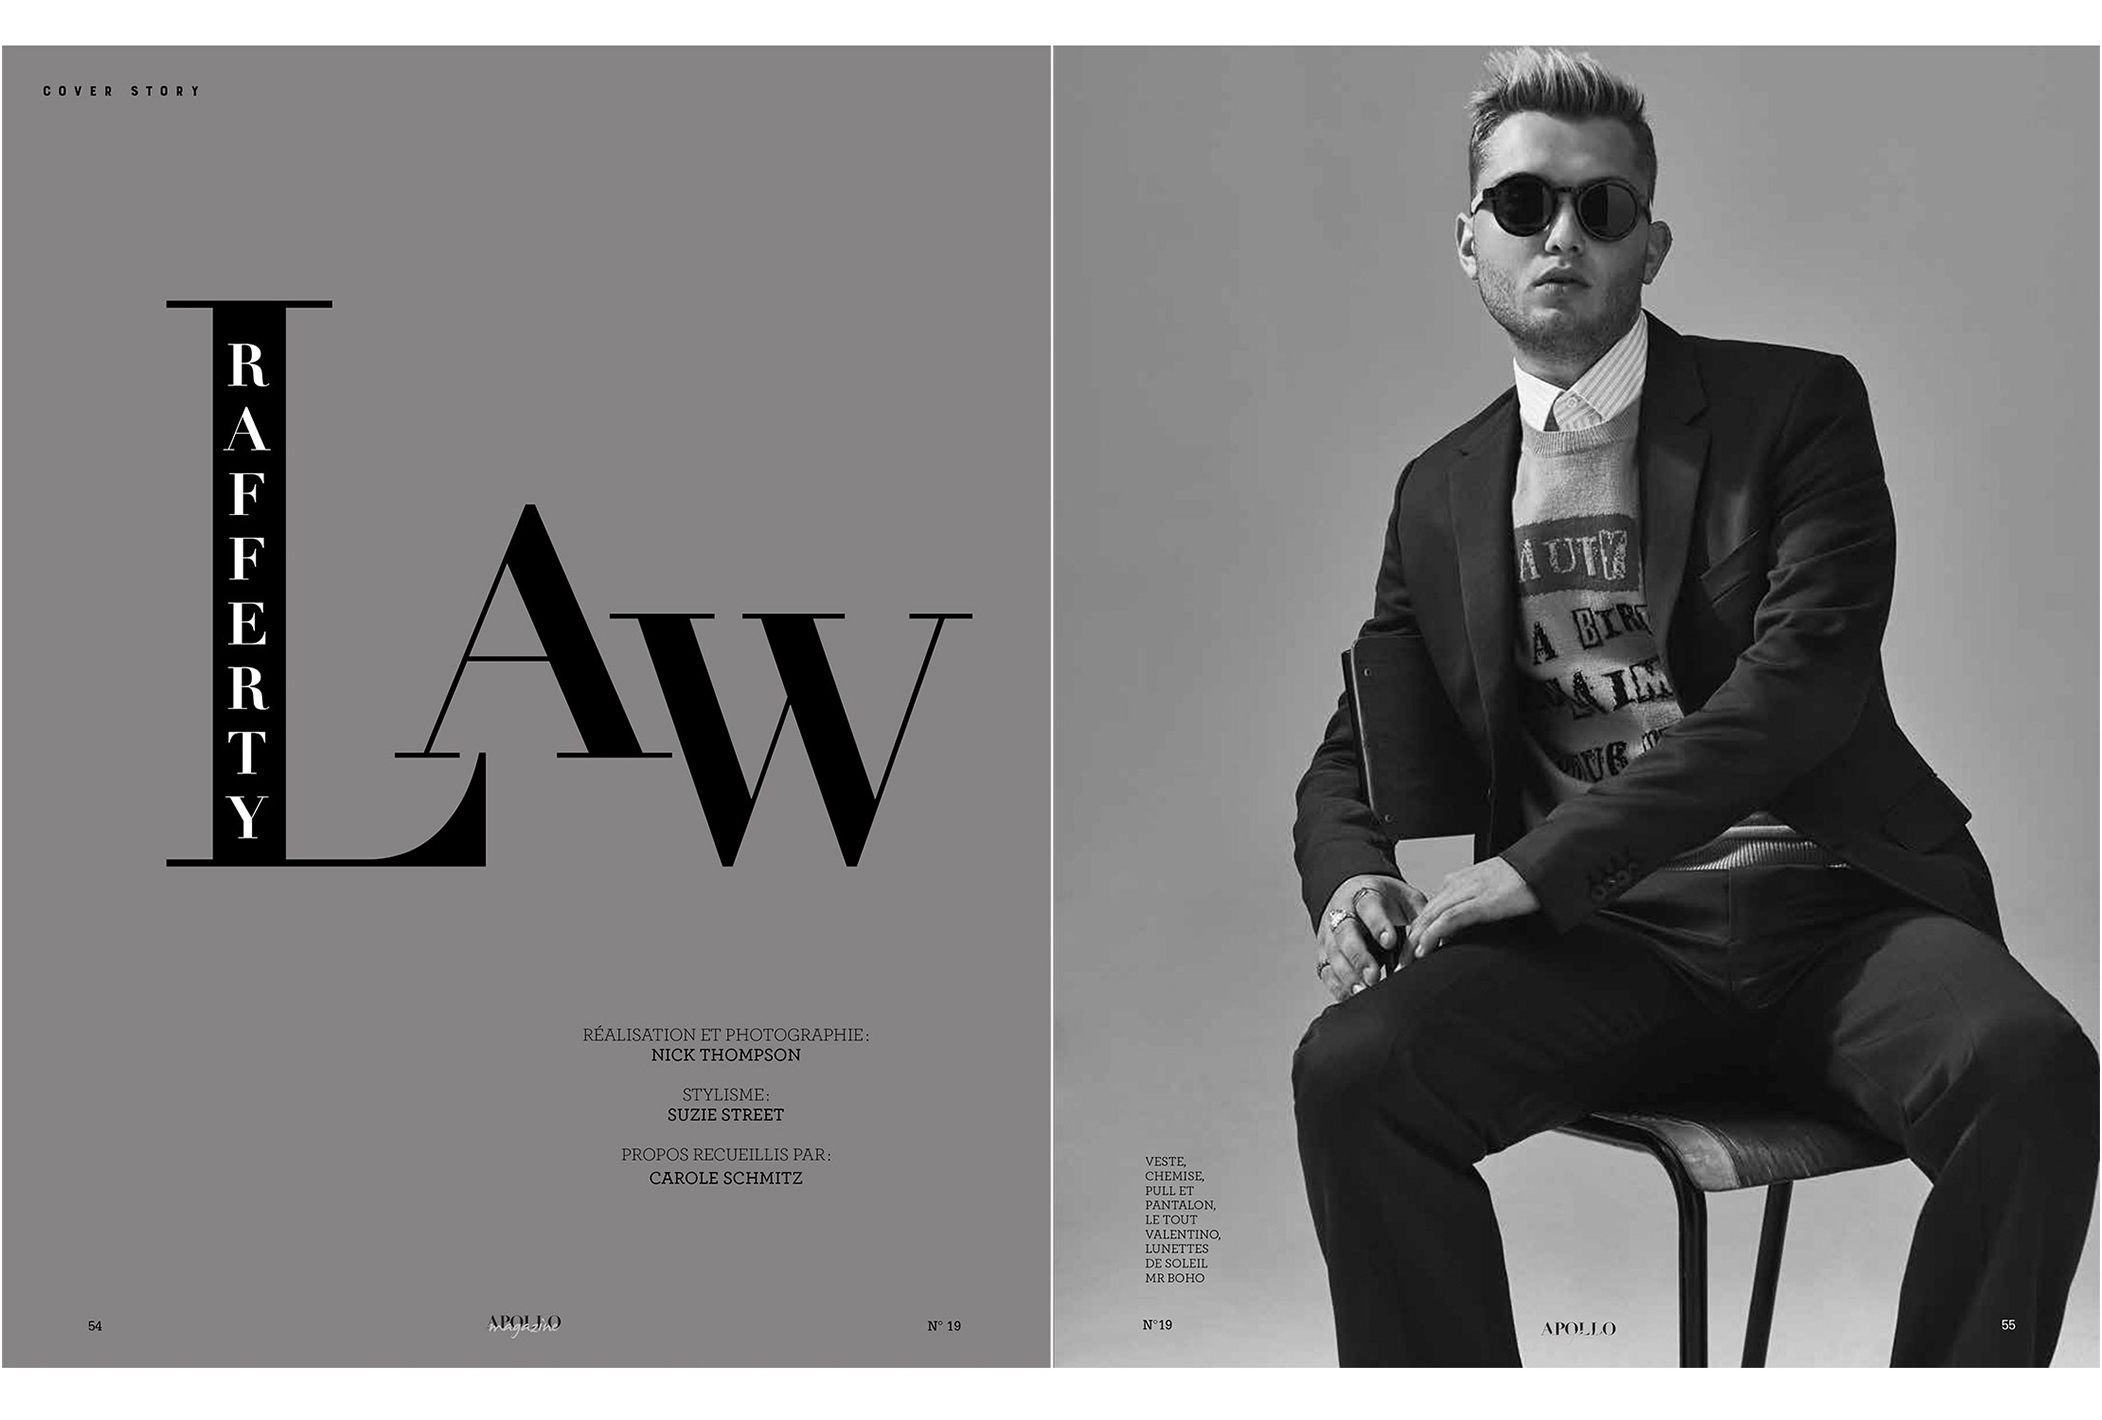 Rafferty Law, Apollo Magazine Nick Thompson